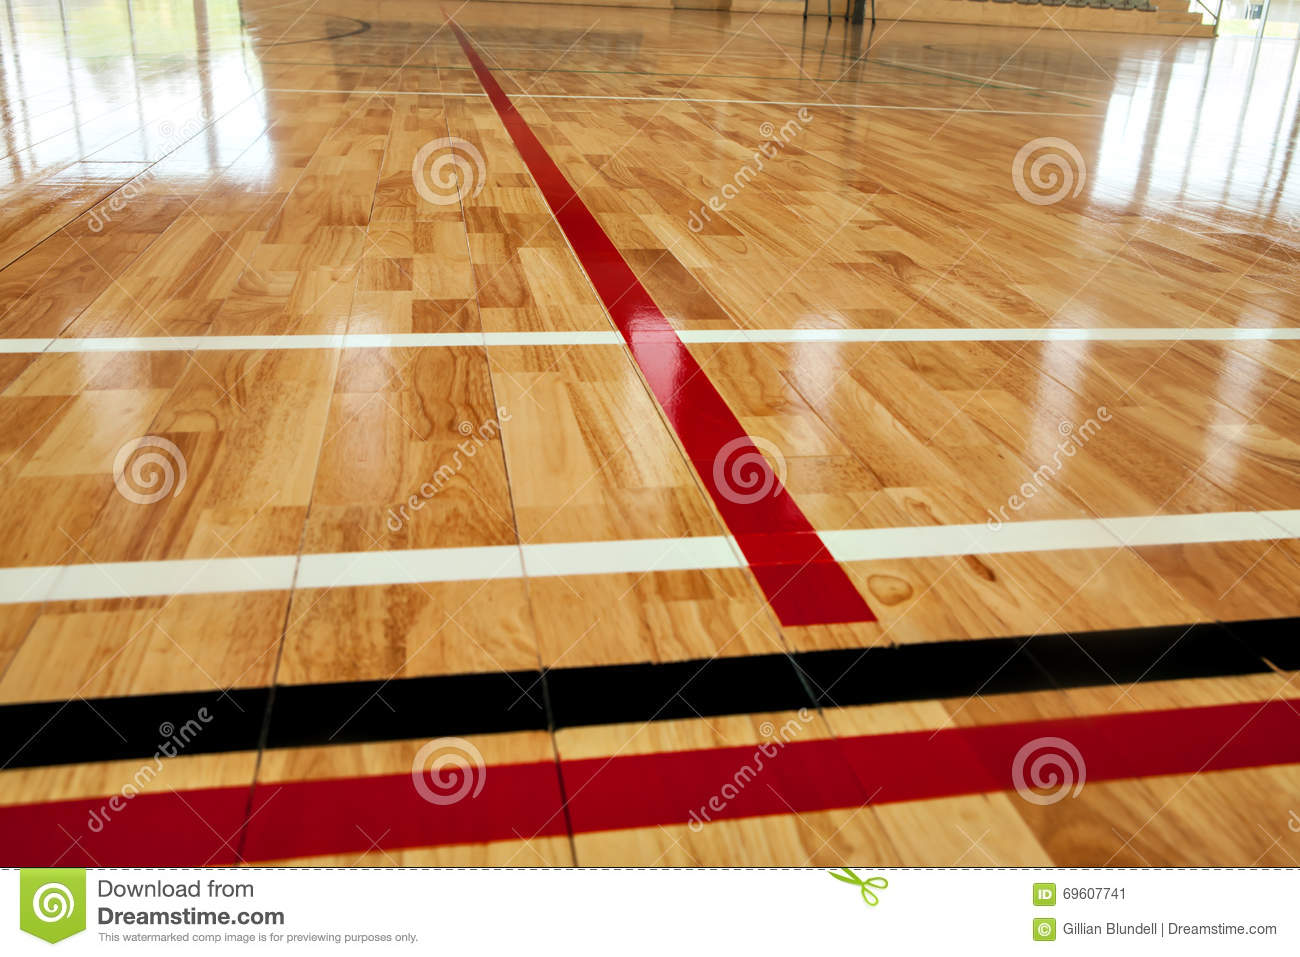 Download Glossy Varnished Sprung Wooden Floor For Sports Basketball Gymnastics Gymnasium With Court